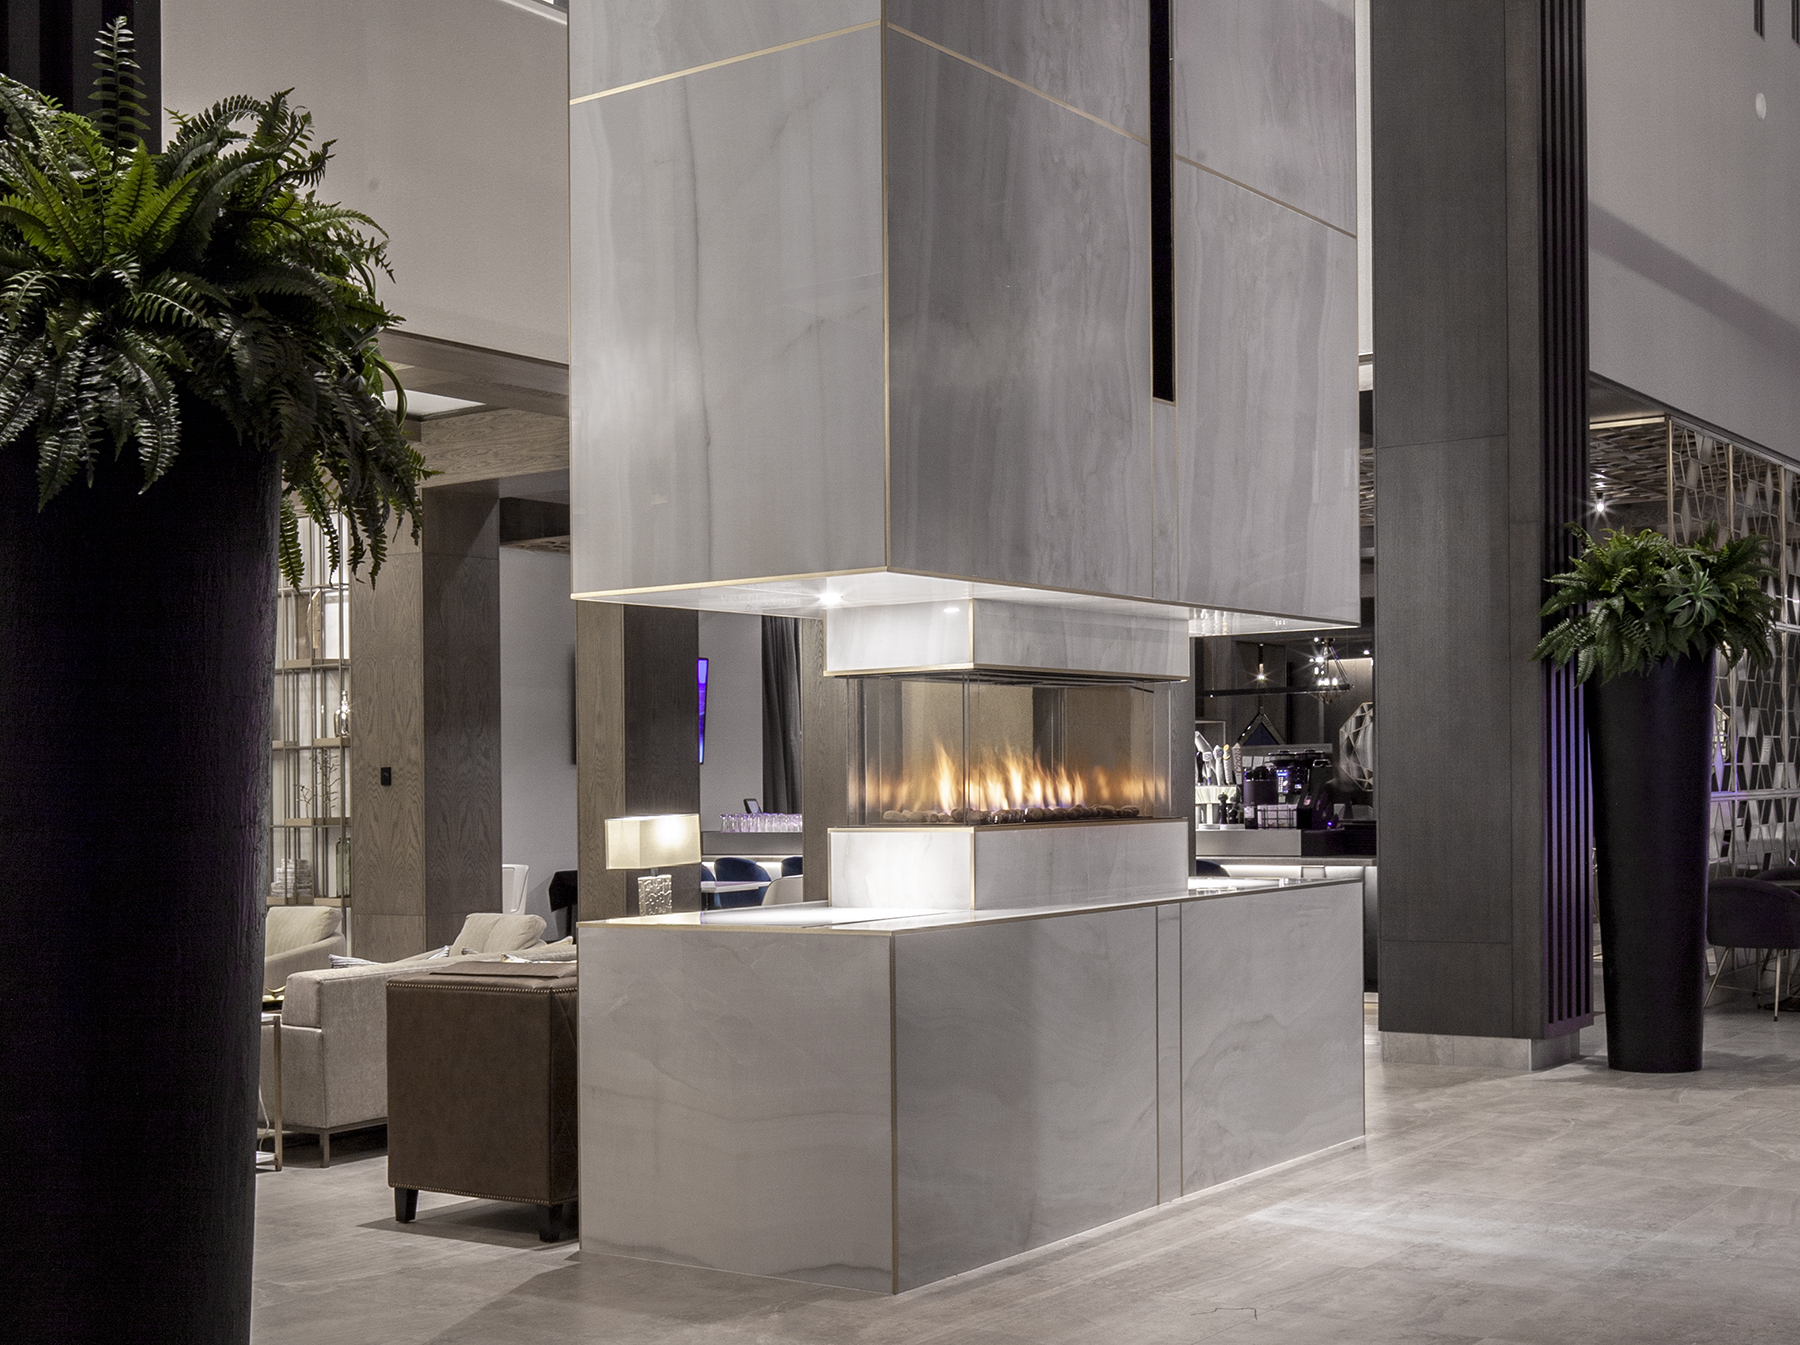 Design D'intérieur St-hyacinthe Hospitality Industry And Hotel Lobby Fireplaces Ortal